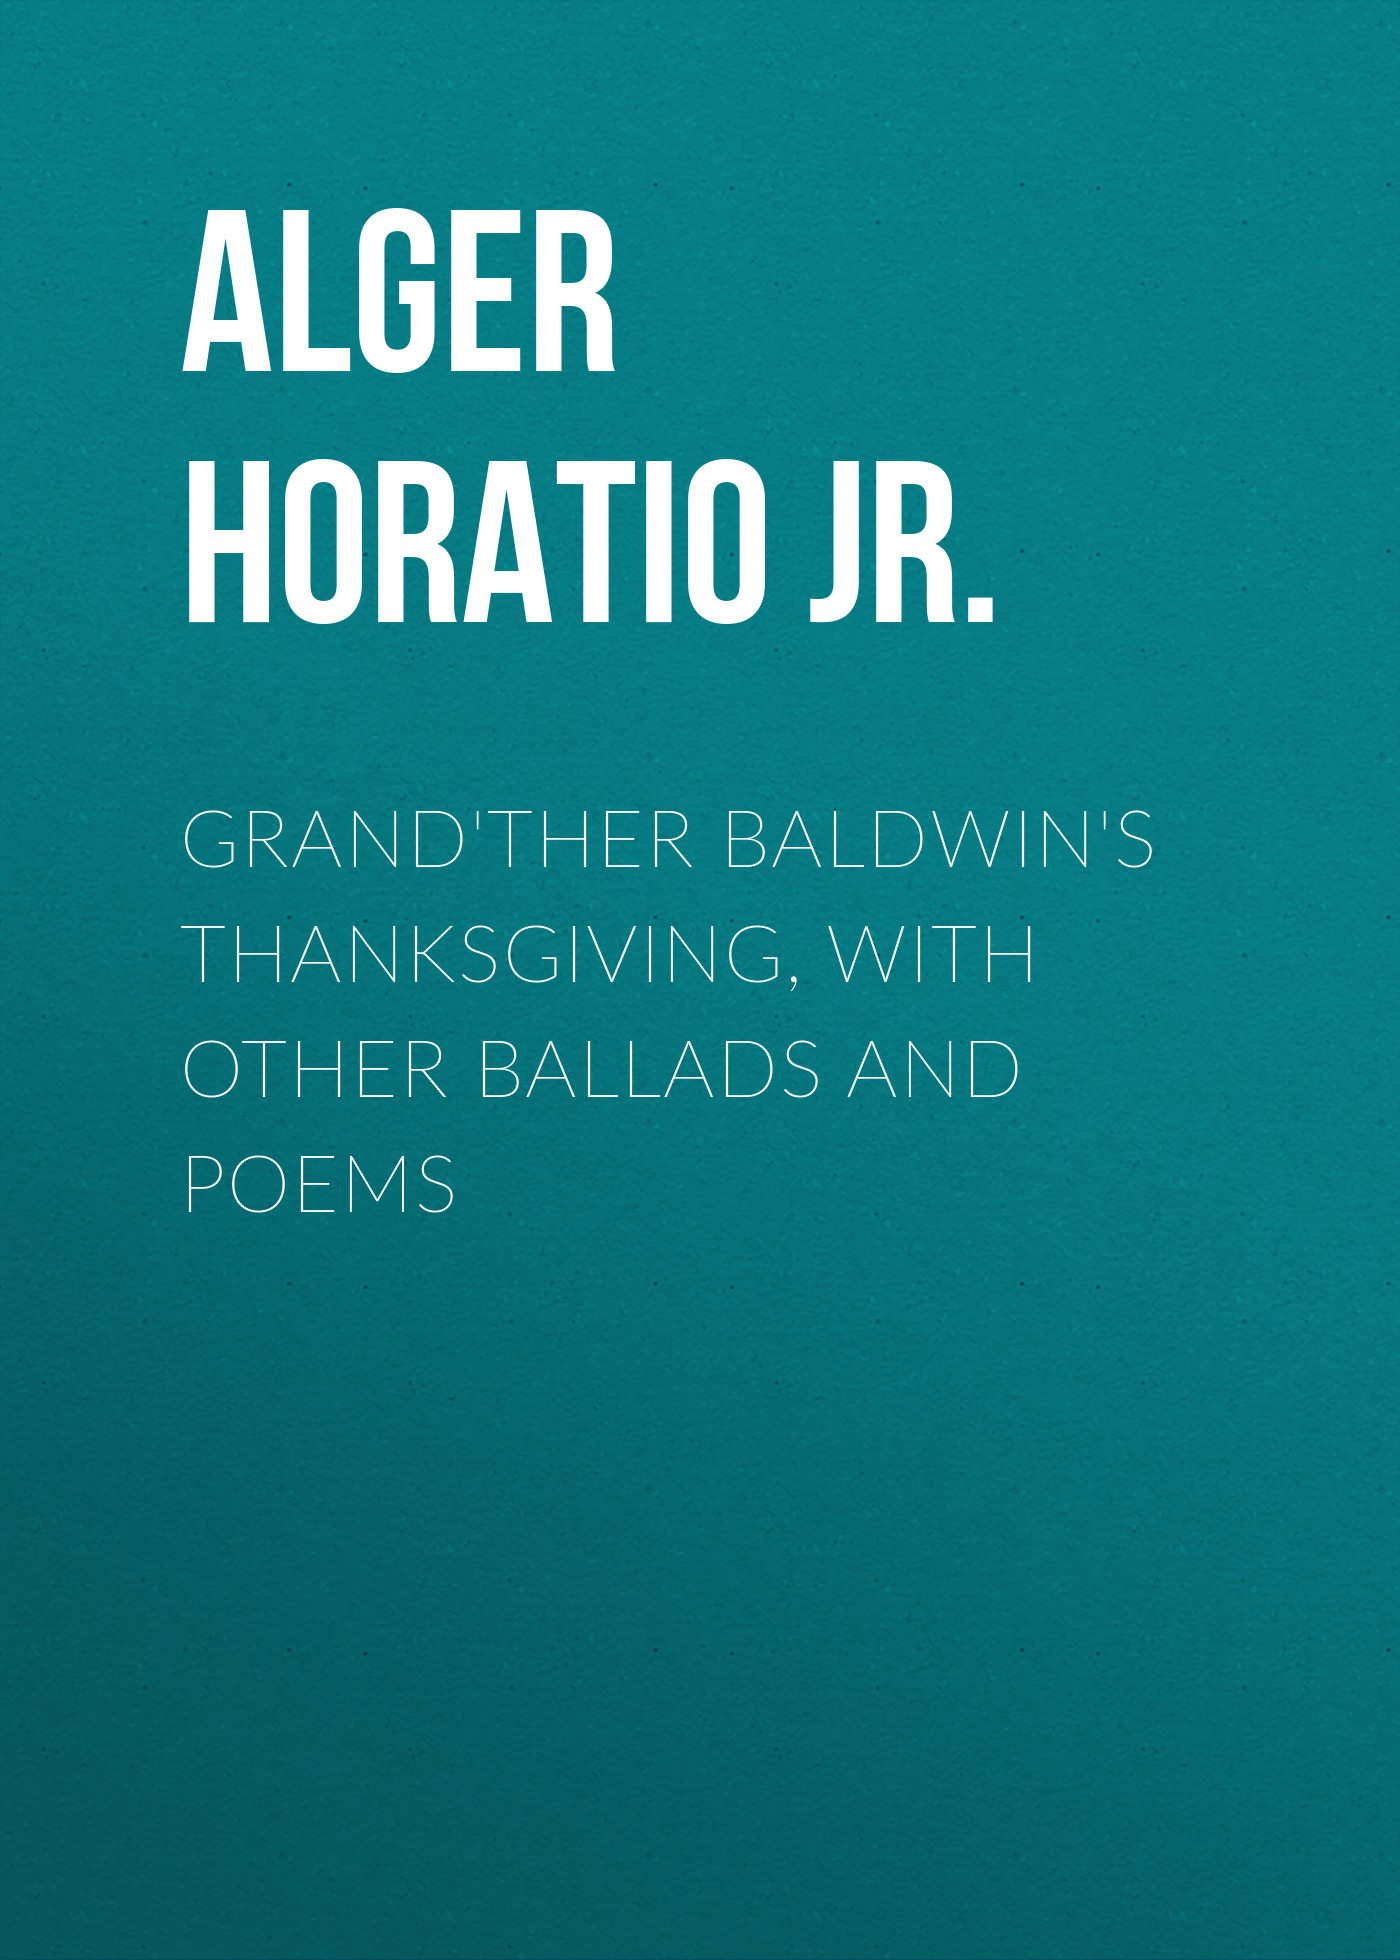 Alger Horatio Jr. Grand'ther Baldwin's Thanksgiving, with Other Ballads and Poems lorpen stf